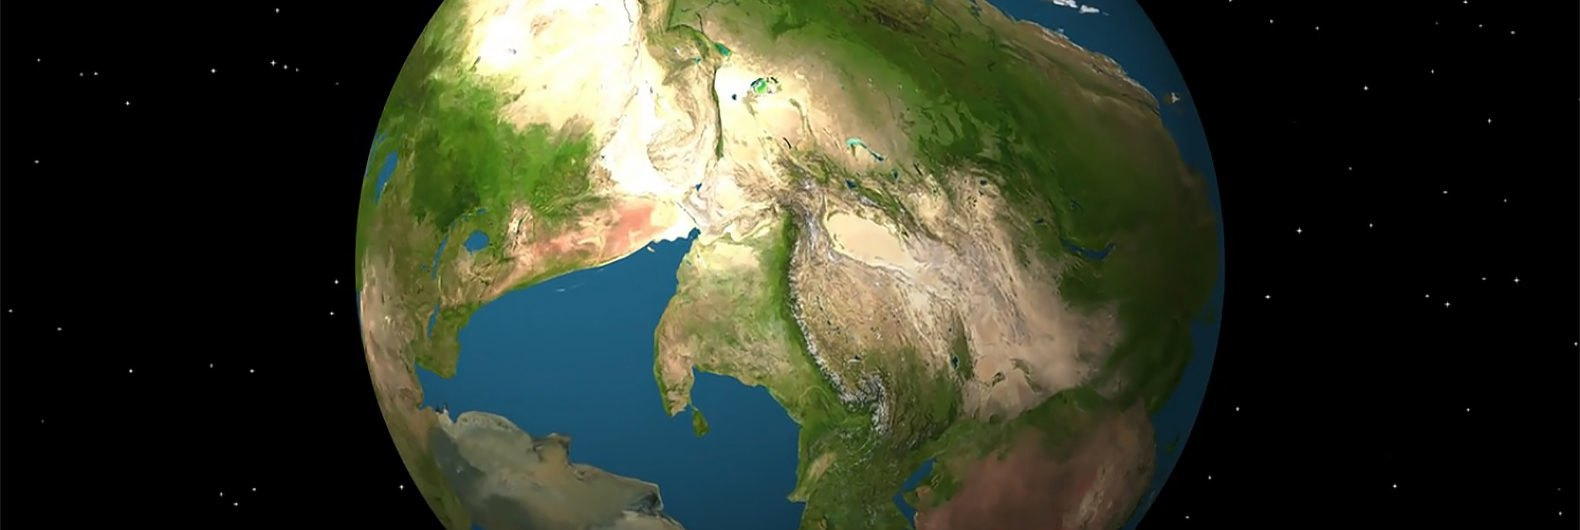 awesome new animation envisions earth in 250 million years